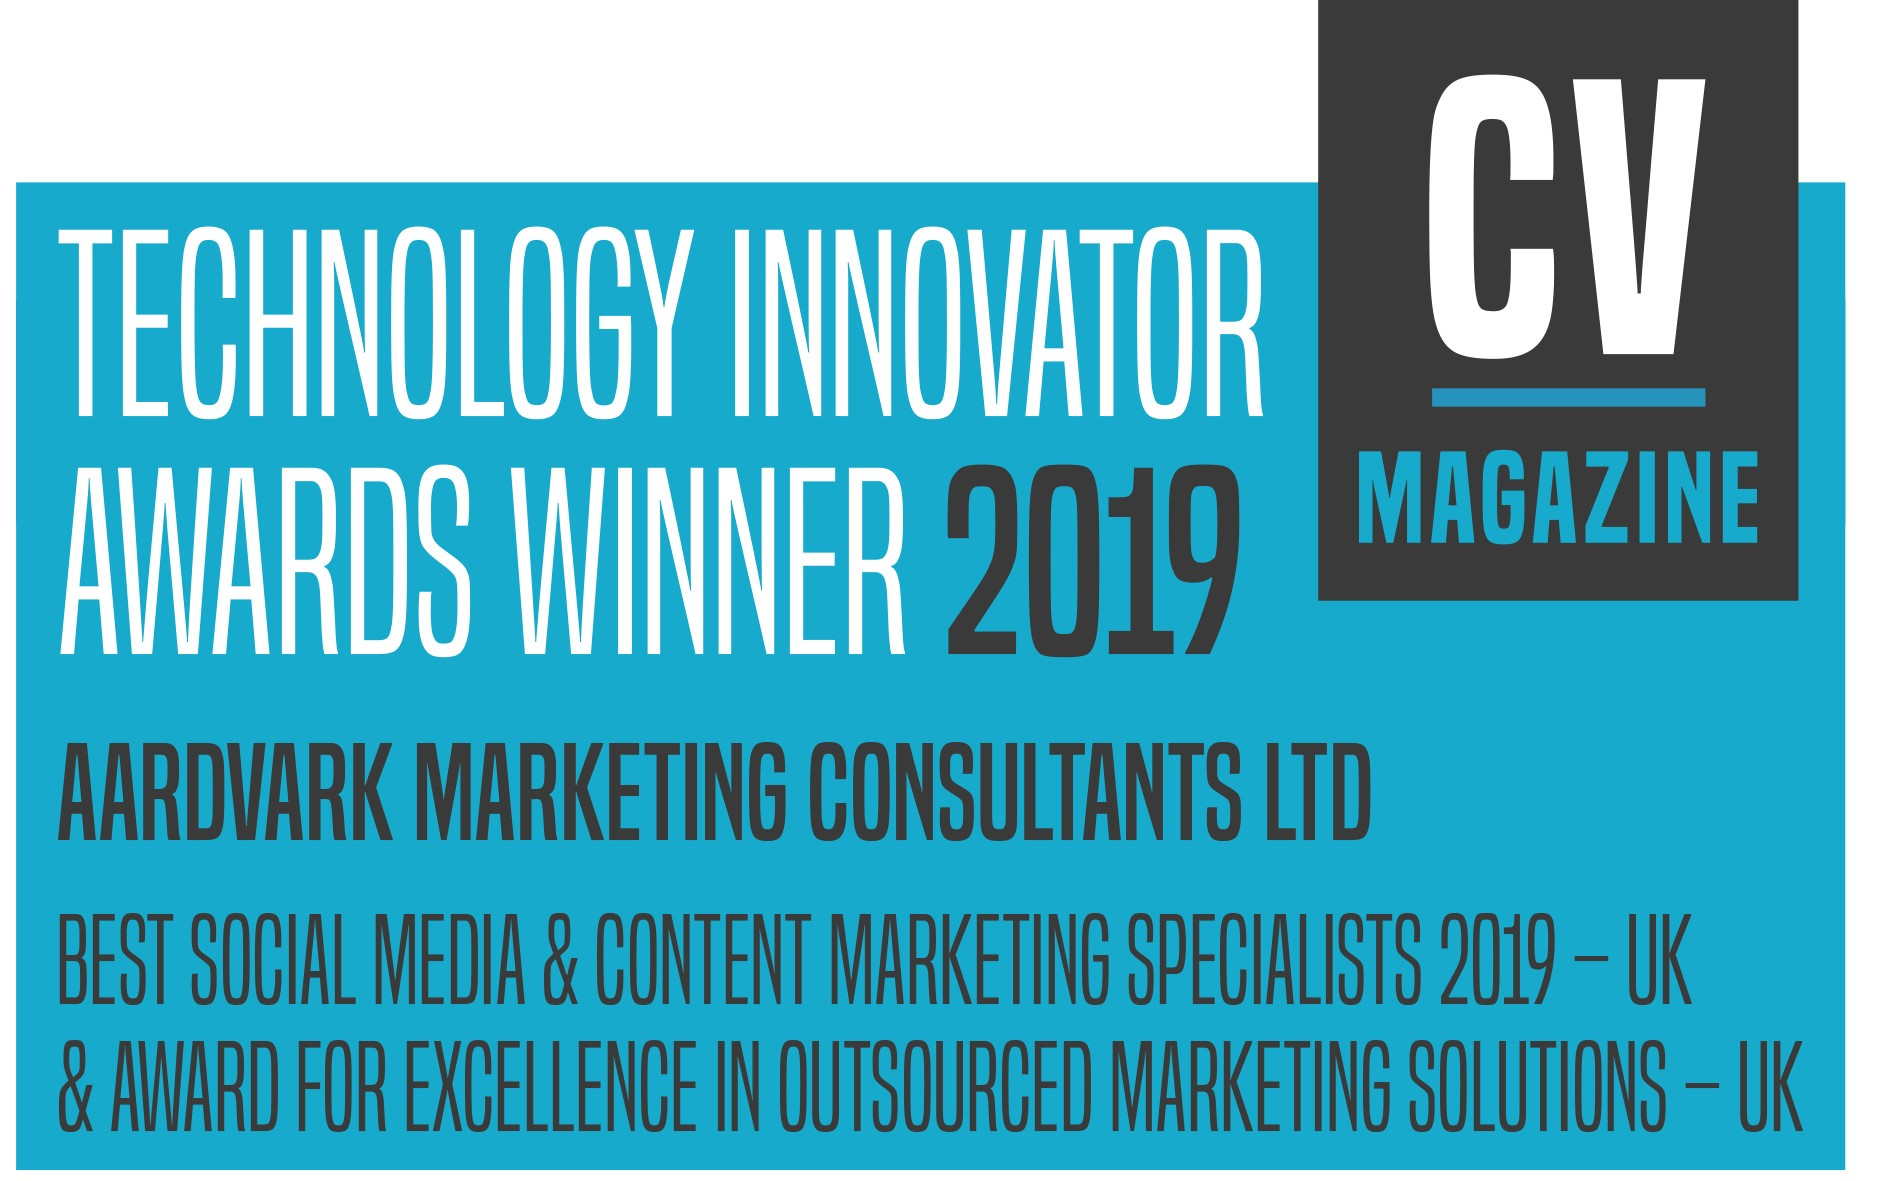 Aardvark Marekting Consultants | Technology Innovator 2019 - best socail media and excelelnce in outsourced marketing